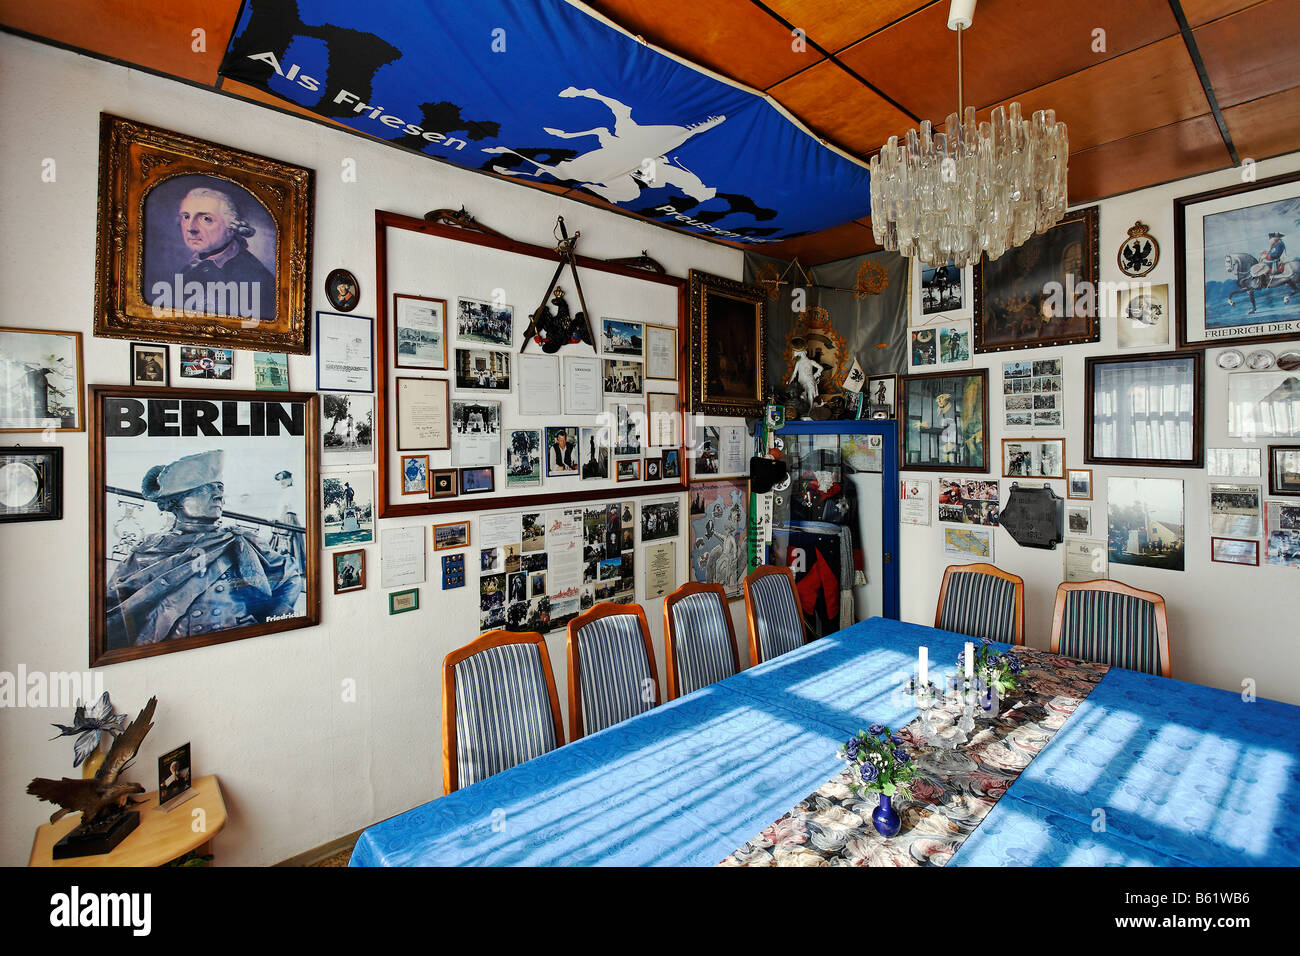 Club room in the pub Zum Alten Fritz, decorated with memorials to Friedrich II, King of Prussia, Letschin municipality, - Stock Image